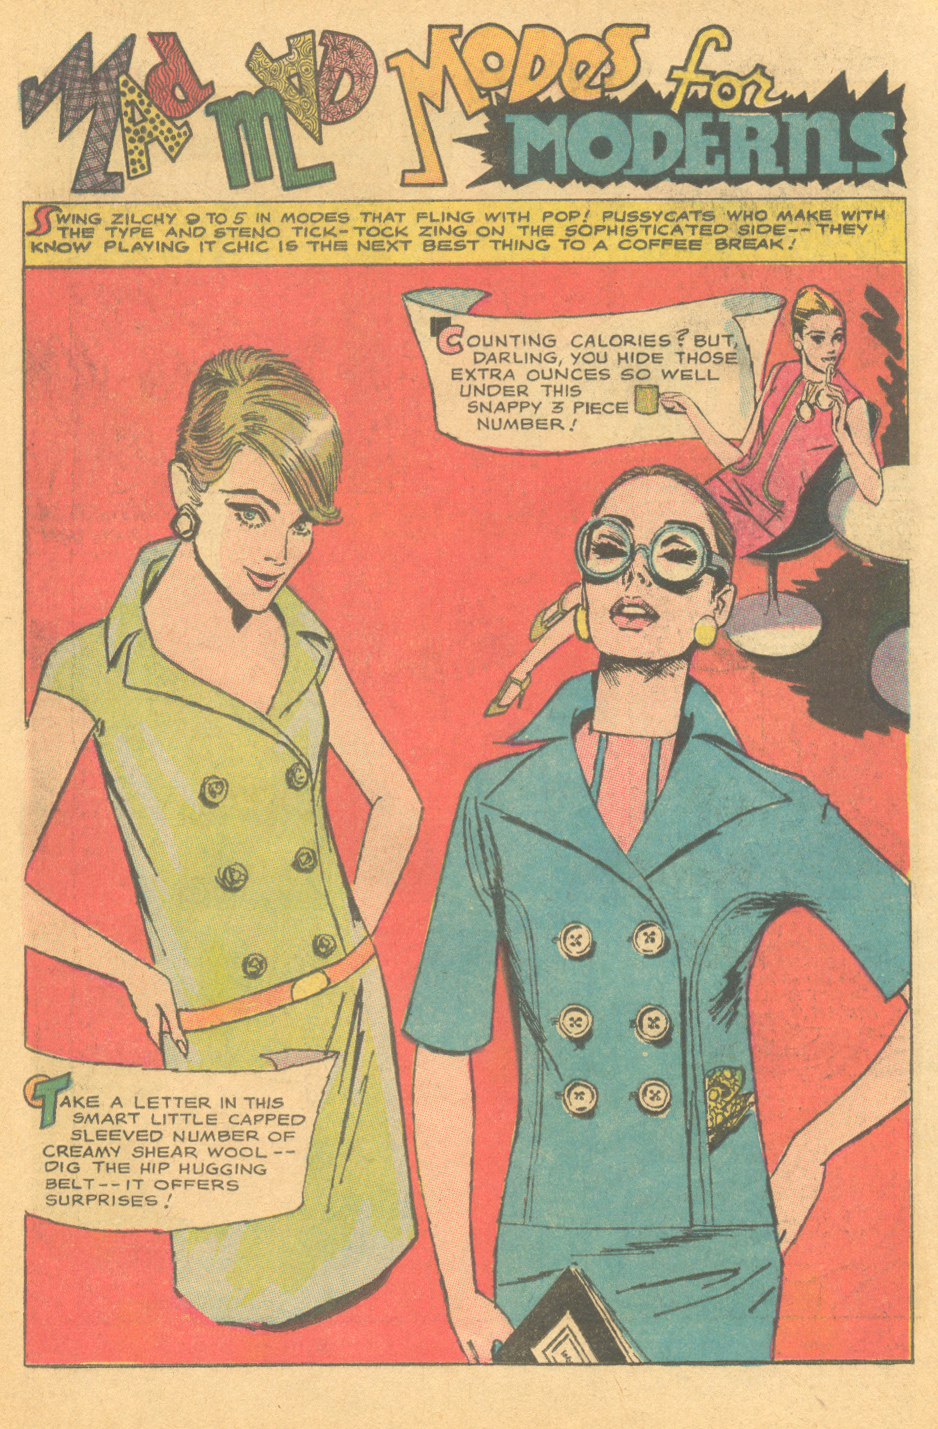 """""""Mad Mad Modes for Moderns""""  Girls' Romances  #122 (January 1967) Illustrated by Tony Abruzzo"""